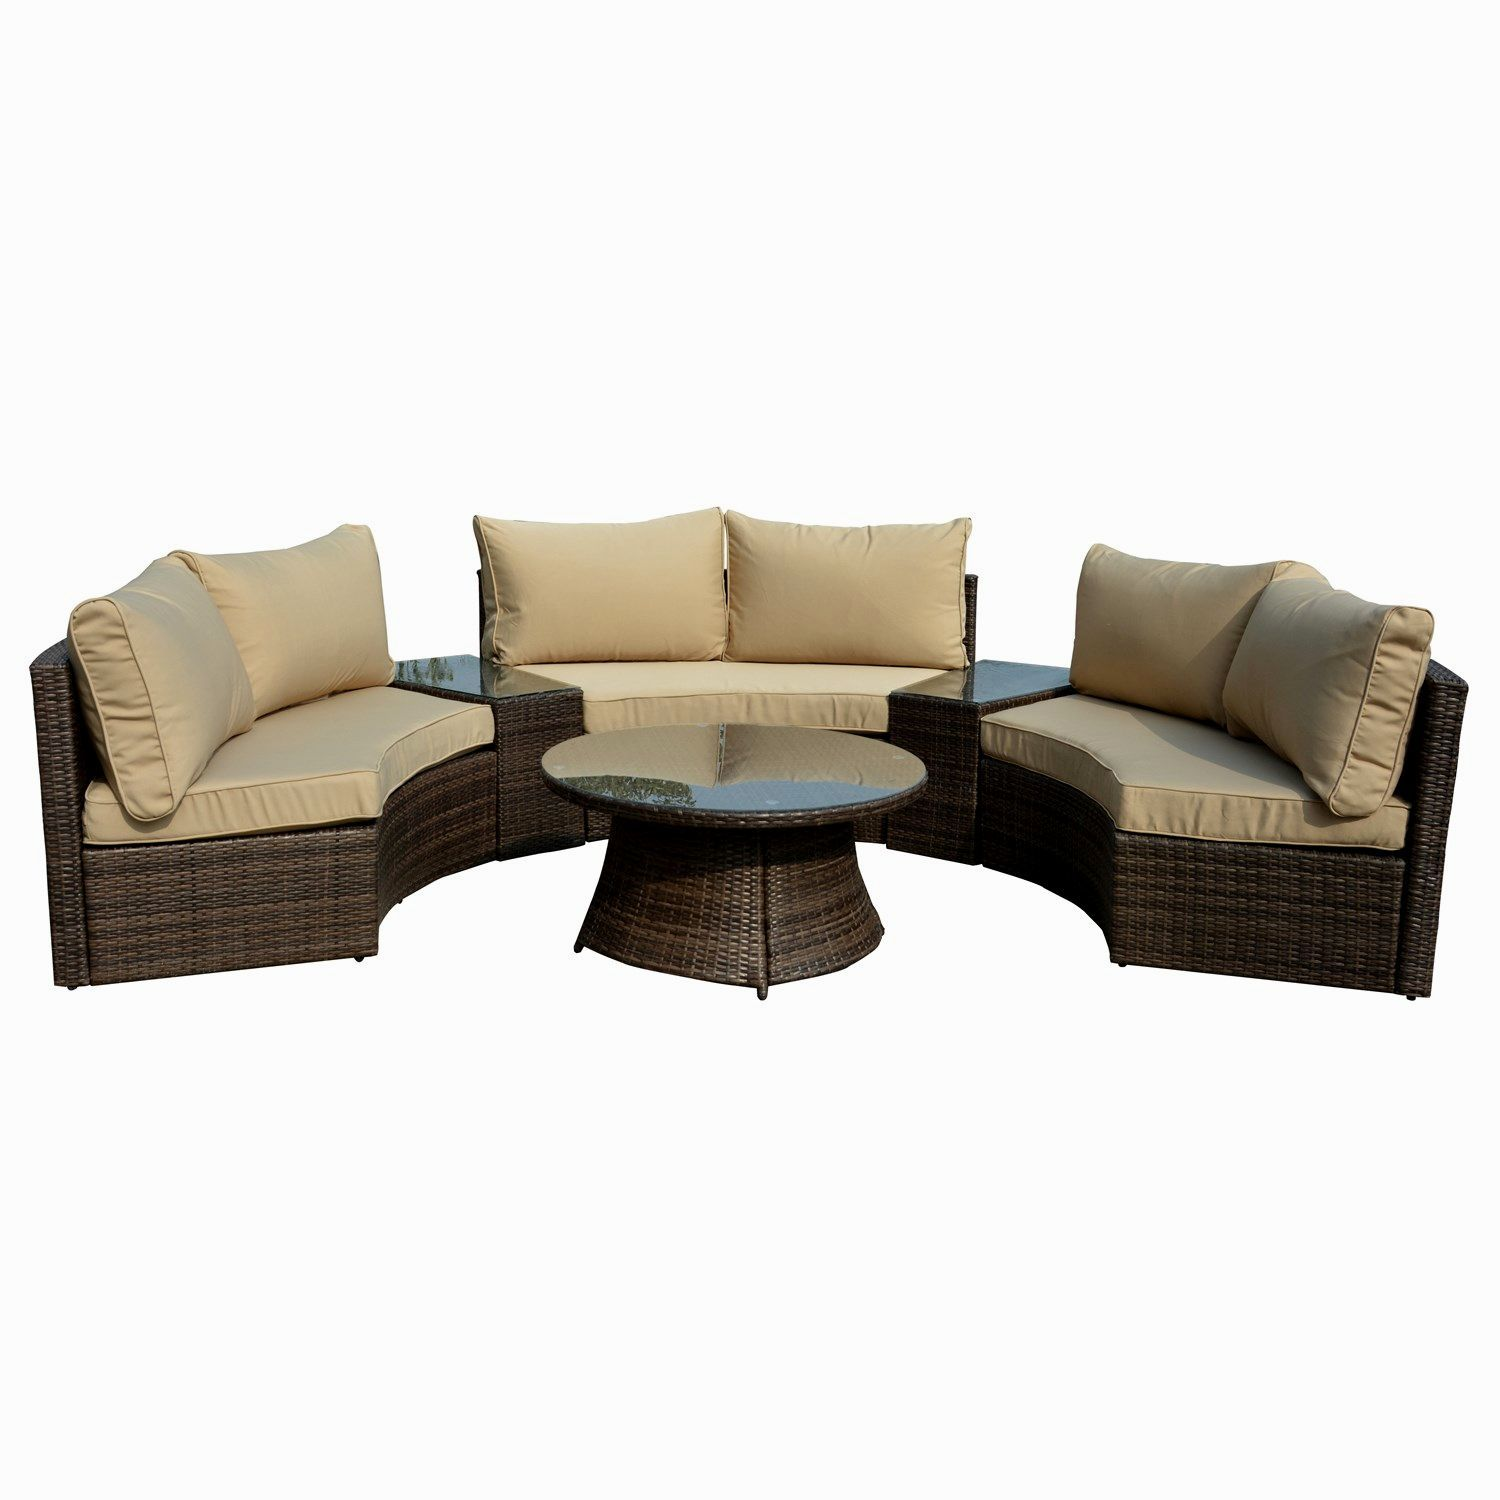 fancy christopher knight home puerta grey outdoor wicker sofa set collection-Fancy Christopher Knight Home Puerta Grey Outdoor Wicker sofa Set Plan